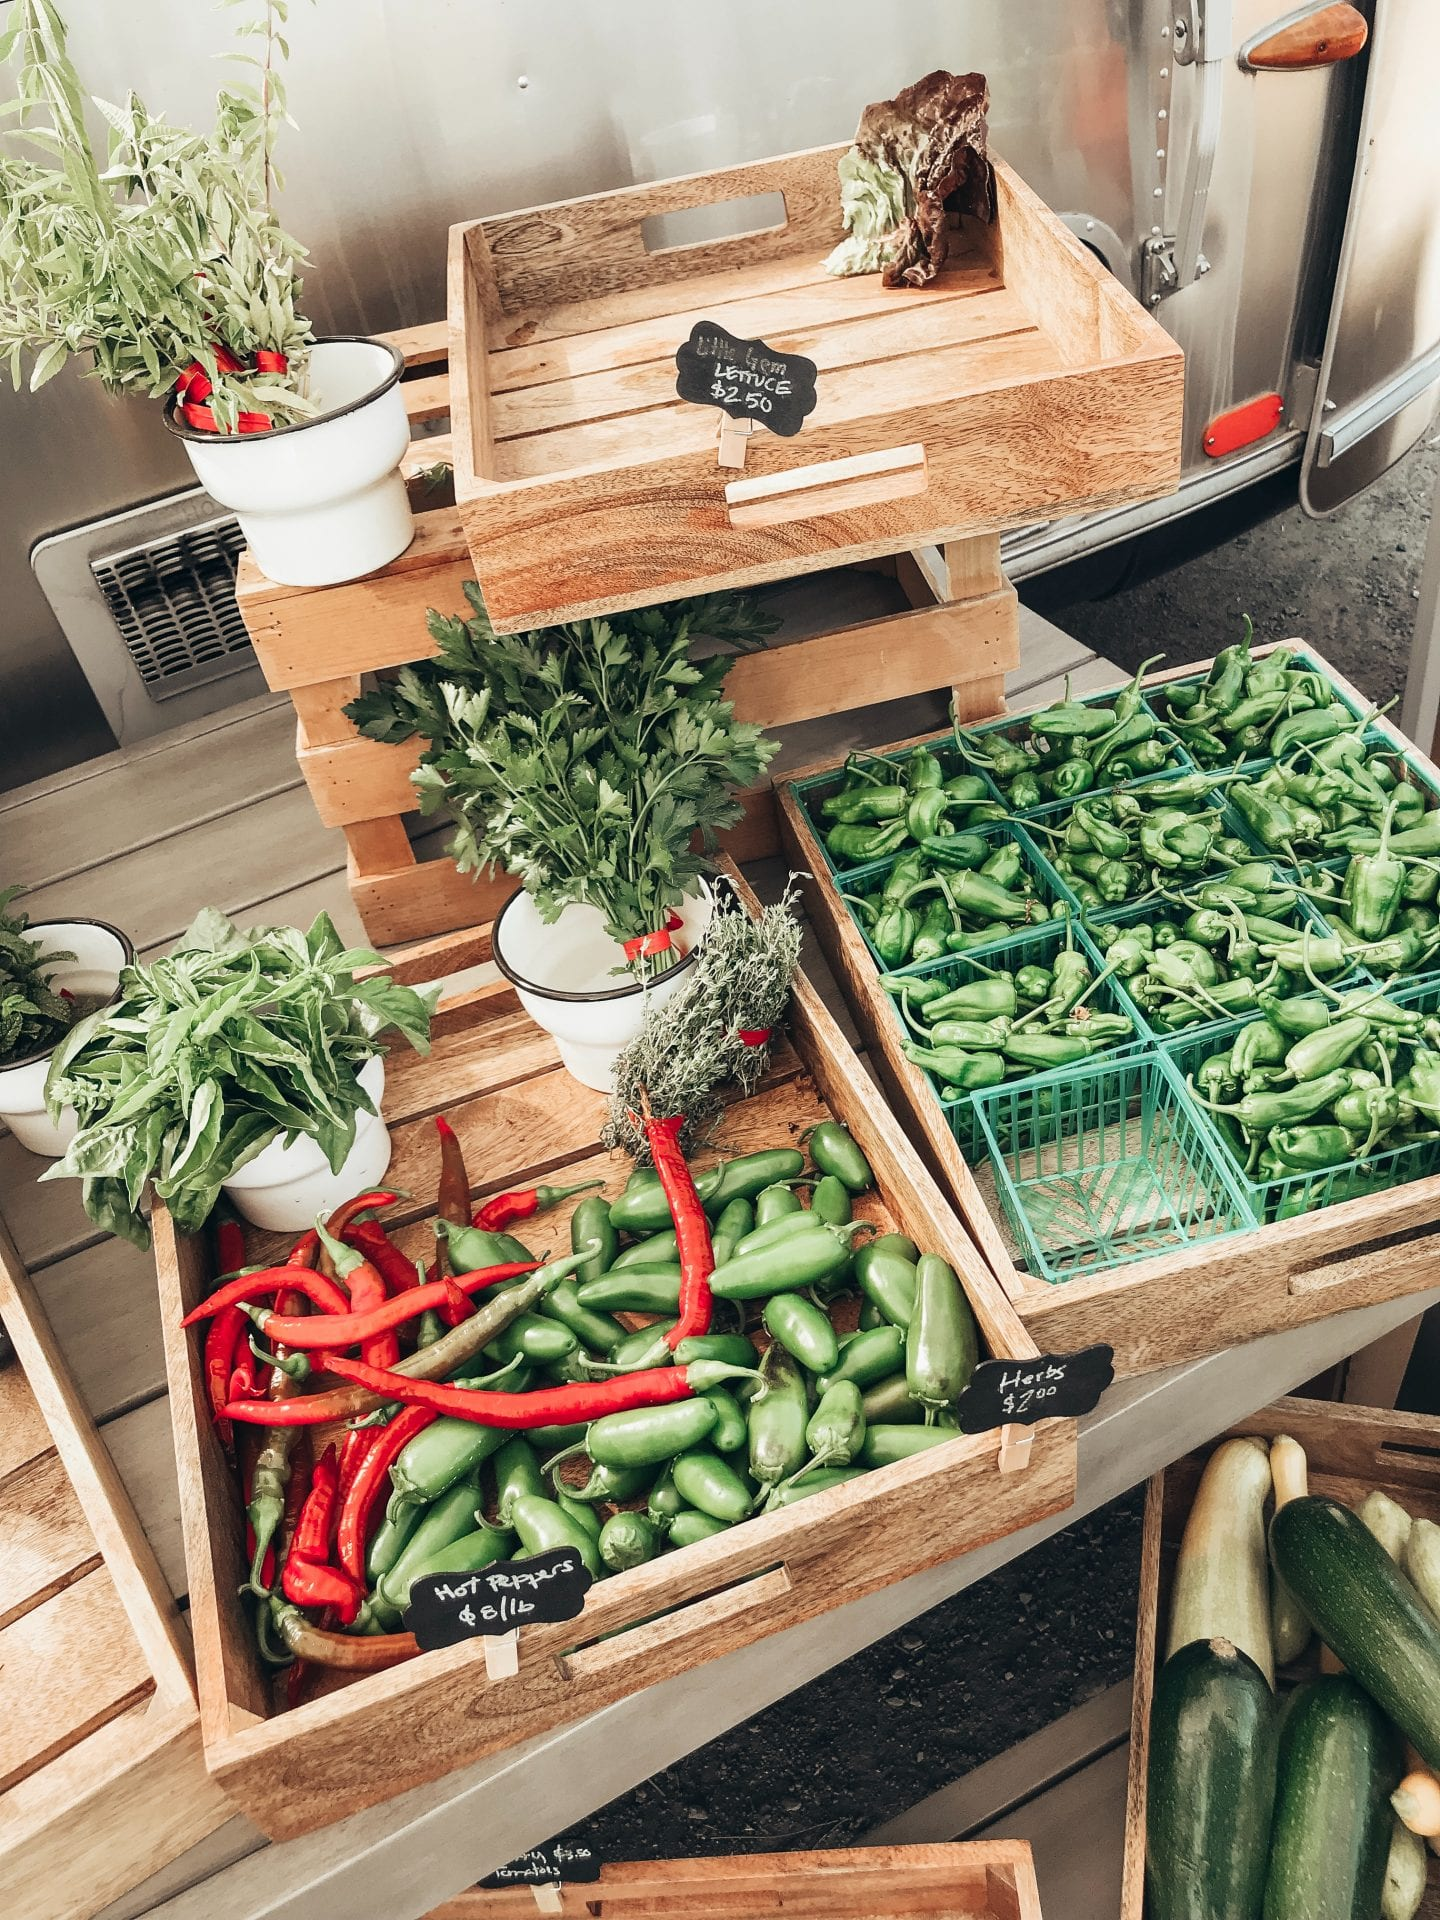 HOW TO STOP WASTING FOOD AND GROCERIES AND SAVE MONEY by popular San Francisco lifestyle blog, Just Add Glam: image of various peppers, herbs, and squashes in wooden crates.